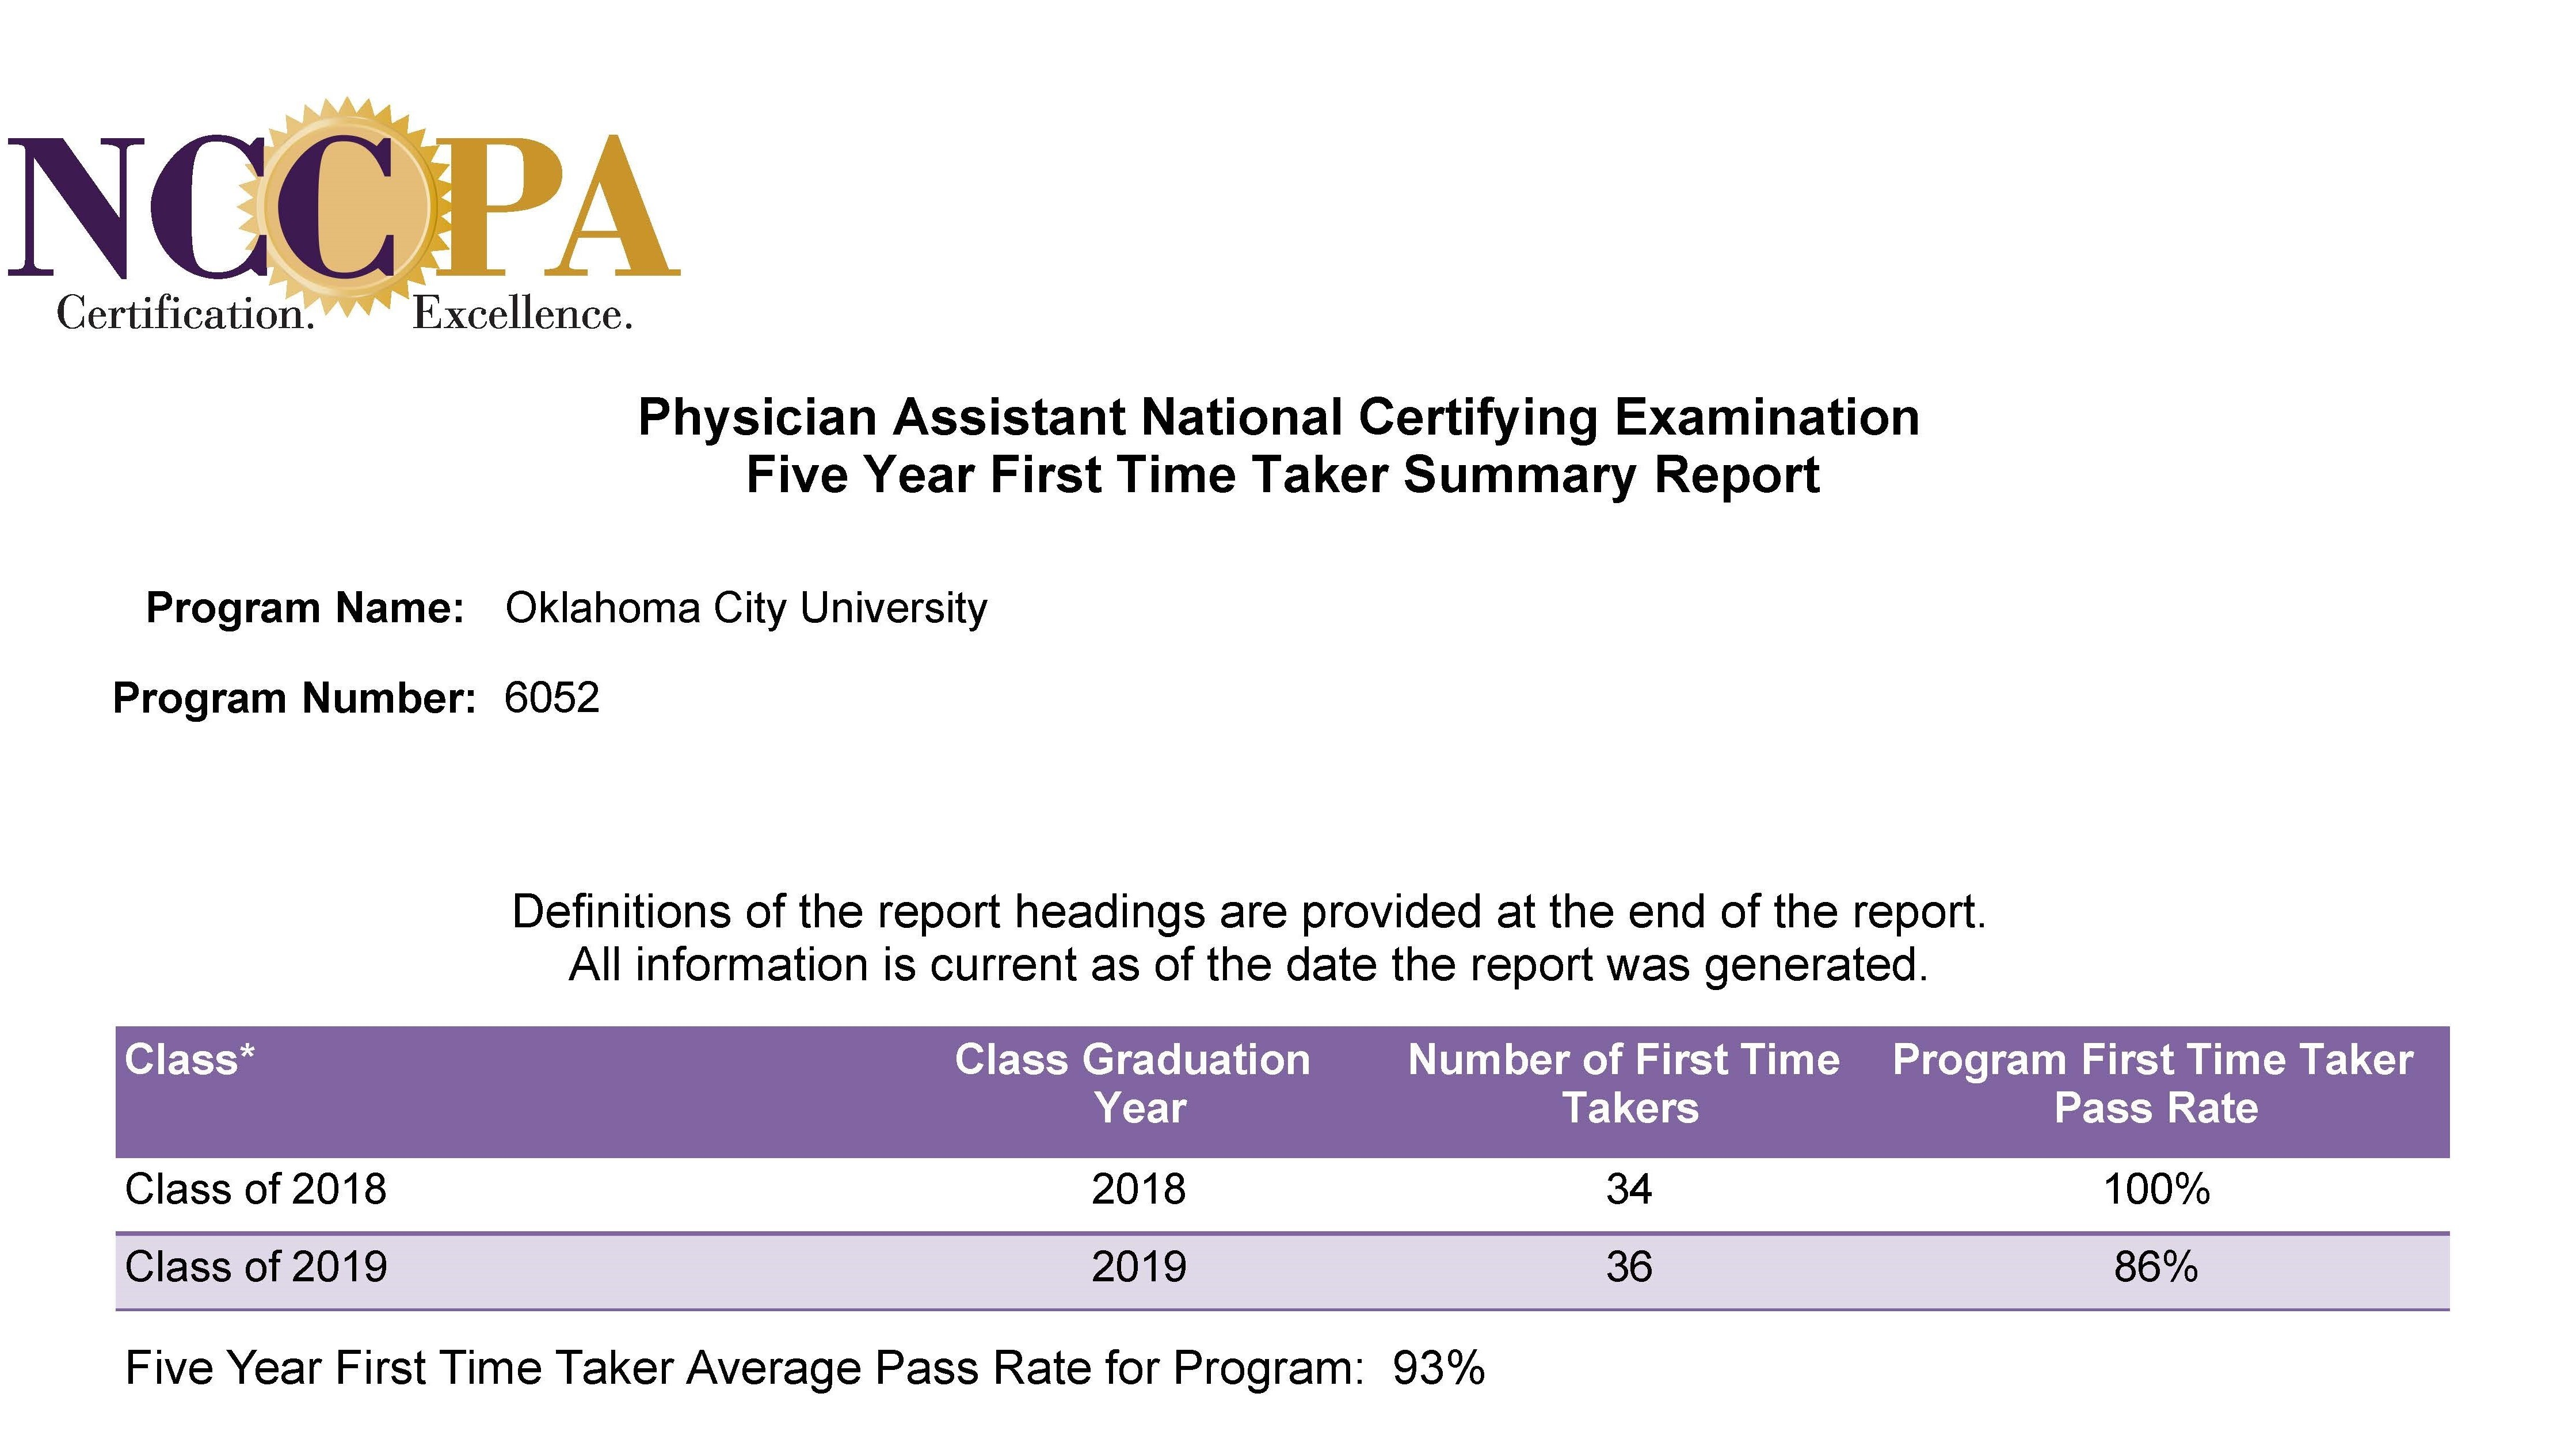 NCCPA Certification. Excellence. Physician Assistant National Certifying Examination Five Year First Time Taker Summary Report. Program Name: Oklahoma City University. Program Number: 6052. Definitions of the report headings are provided at the end of the report. All information is current as of the date the report was generated. Class of 2018, 34 first time takers, 100% pass rate. Class of 2019, 36 first time takers, 86% pass rate. Five year first time average pass rate for program: 93%